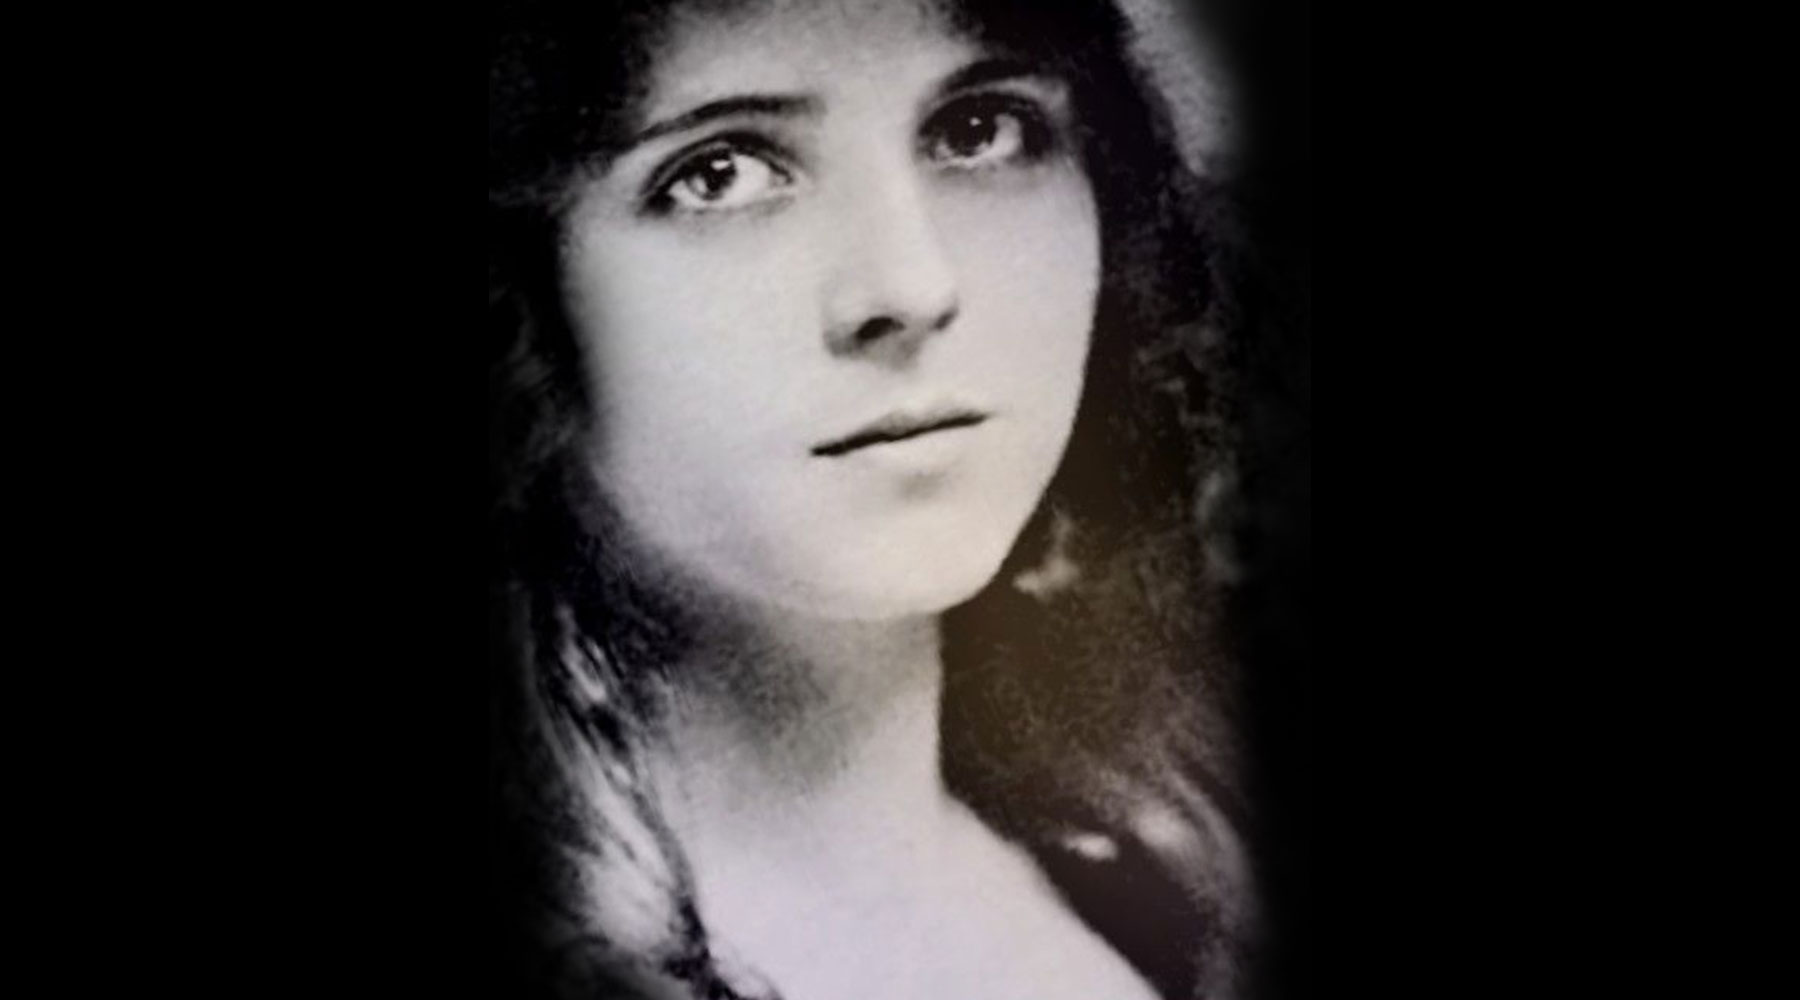 Olive Thomas was born poor in Charleroi, Pennsylvania. Olive left school at 15 to help support her family.